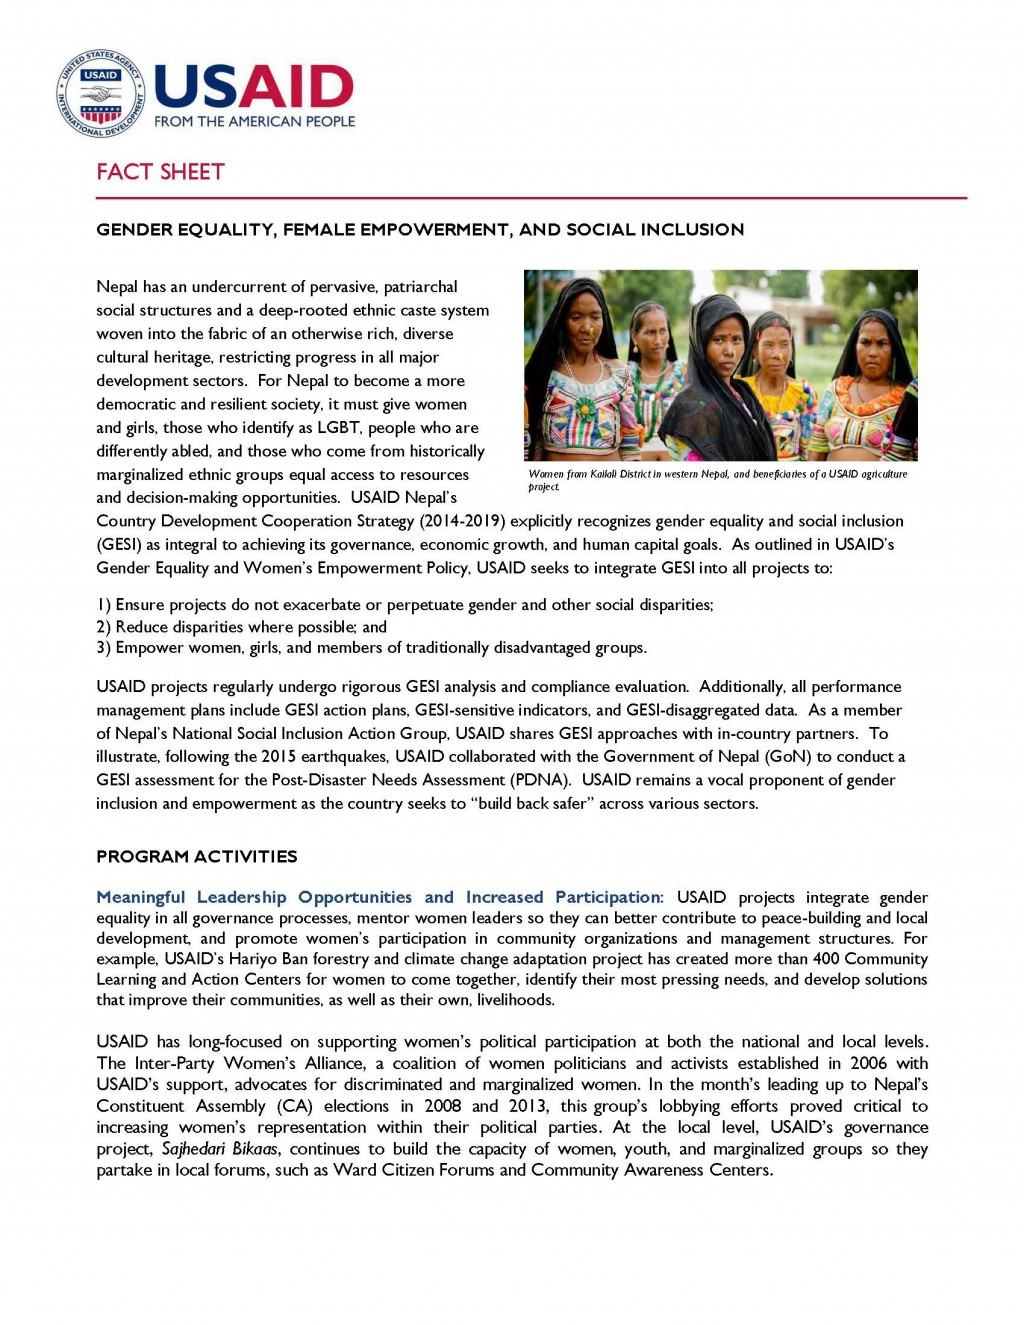 001 Essay On Gender Discrimination In Nepal Final Gesi Factsheet Page 1 2 Incredible Large